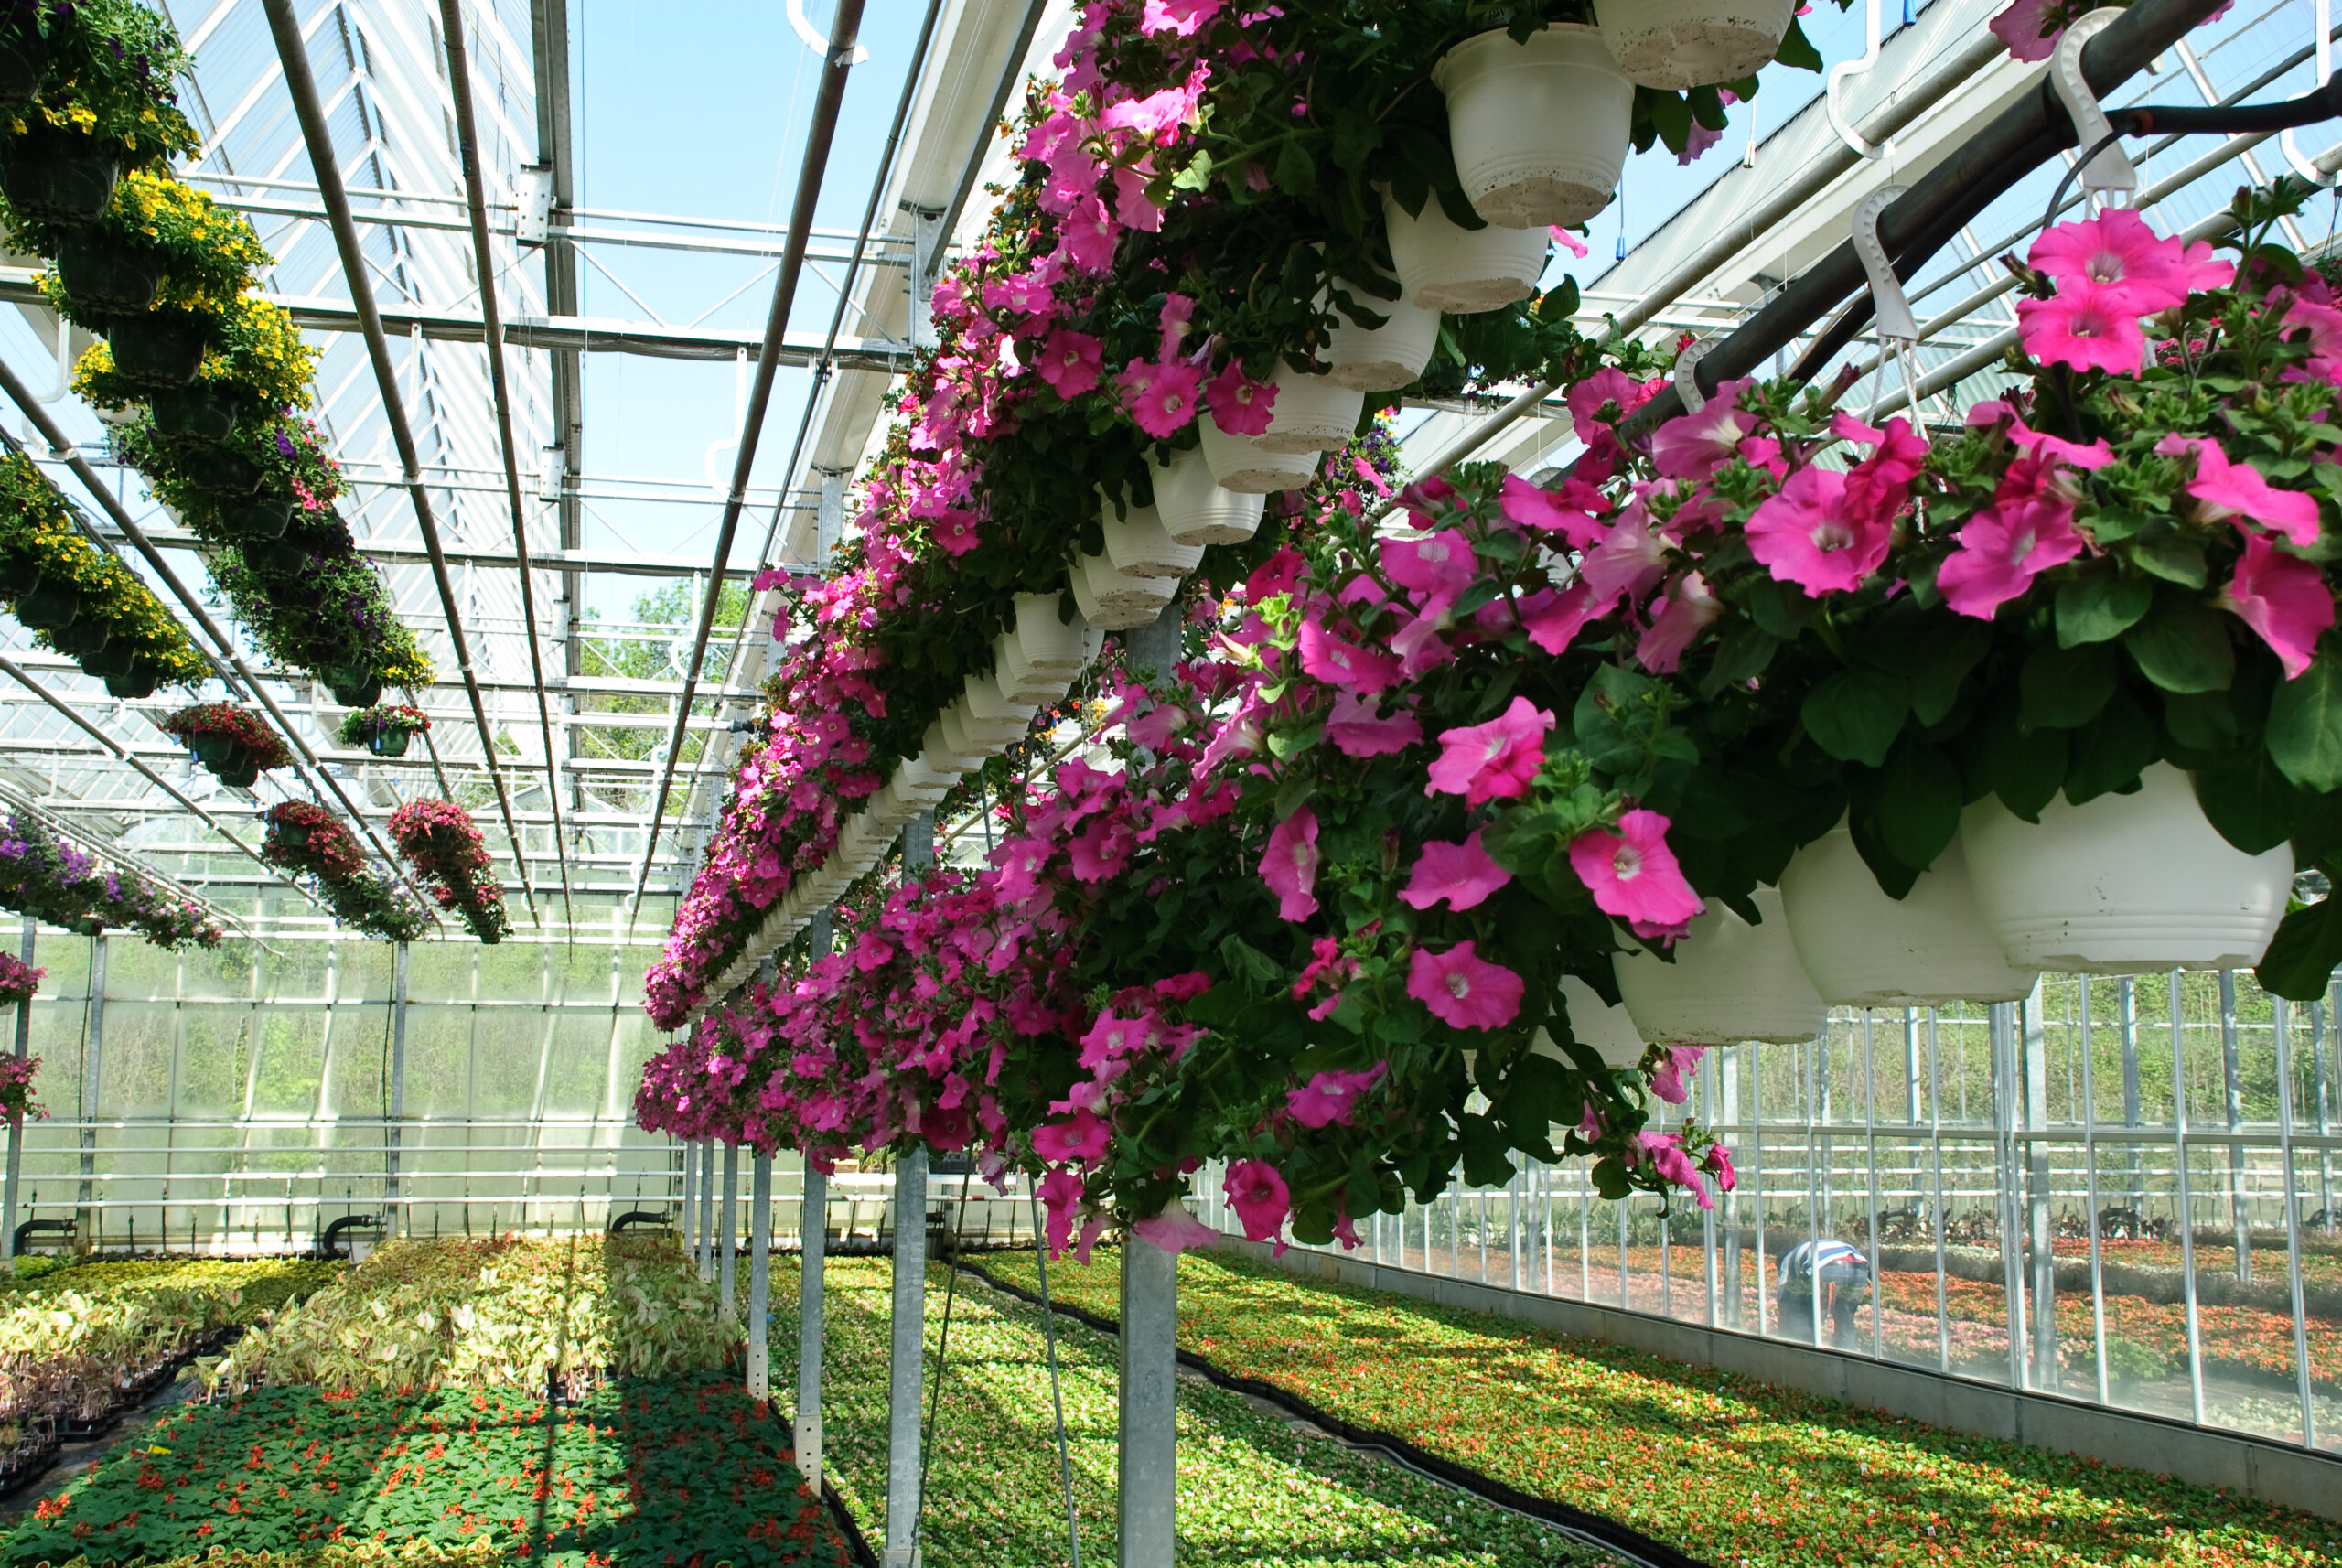 Hanging Baskets Growing in the Greenhouses at Greenstreet Growers